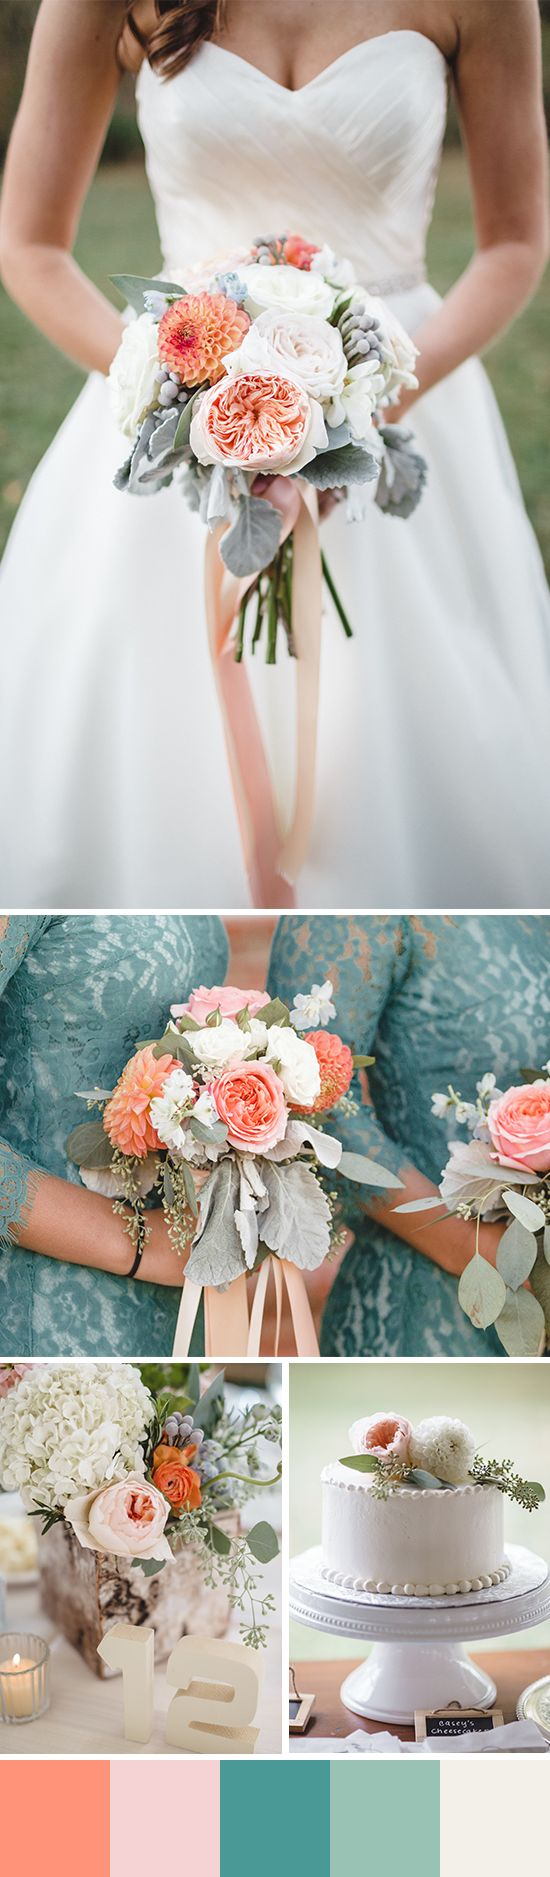 *Swooning* over this waterfront wedding color palette! {Tara Peddicord Photography}